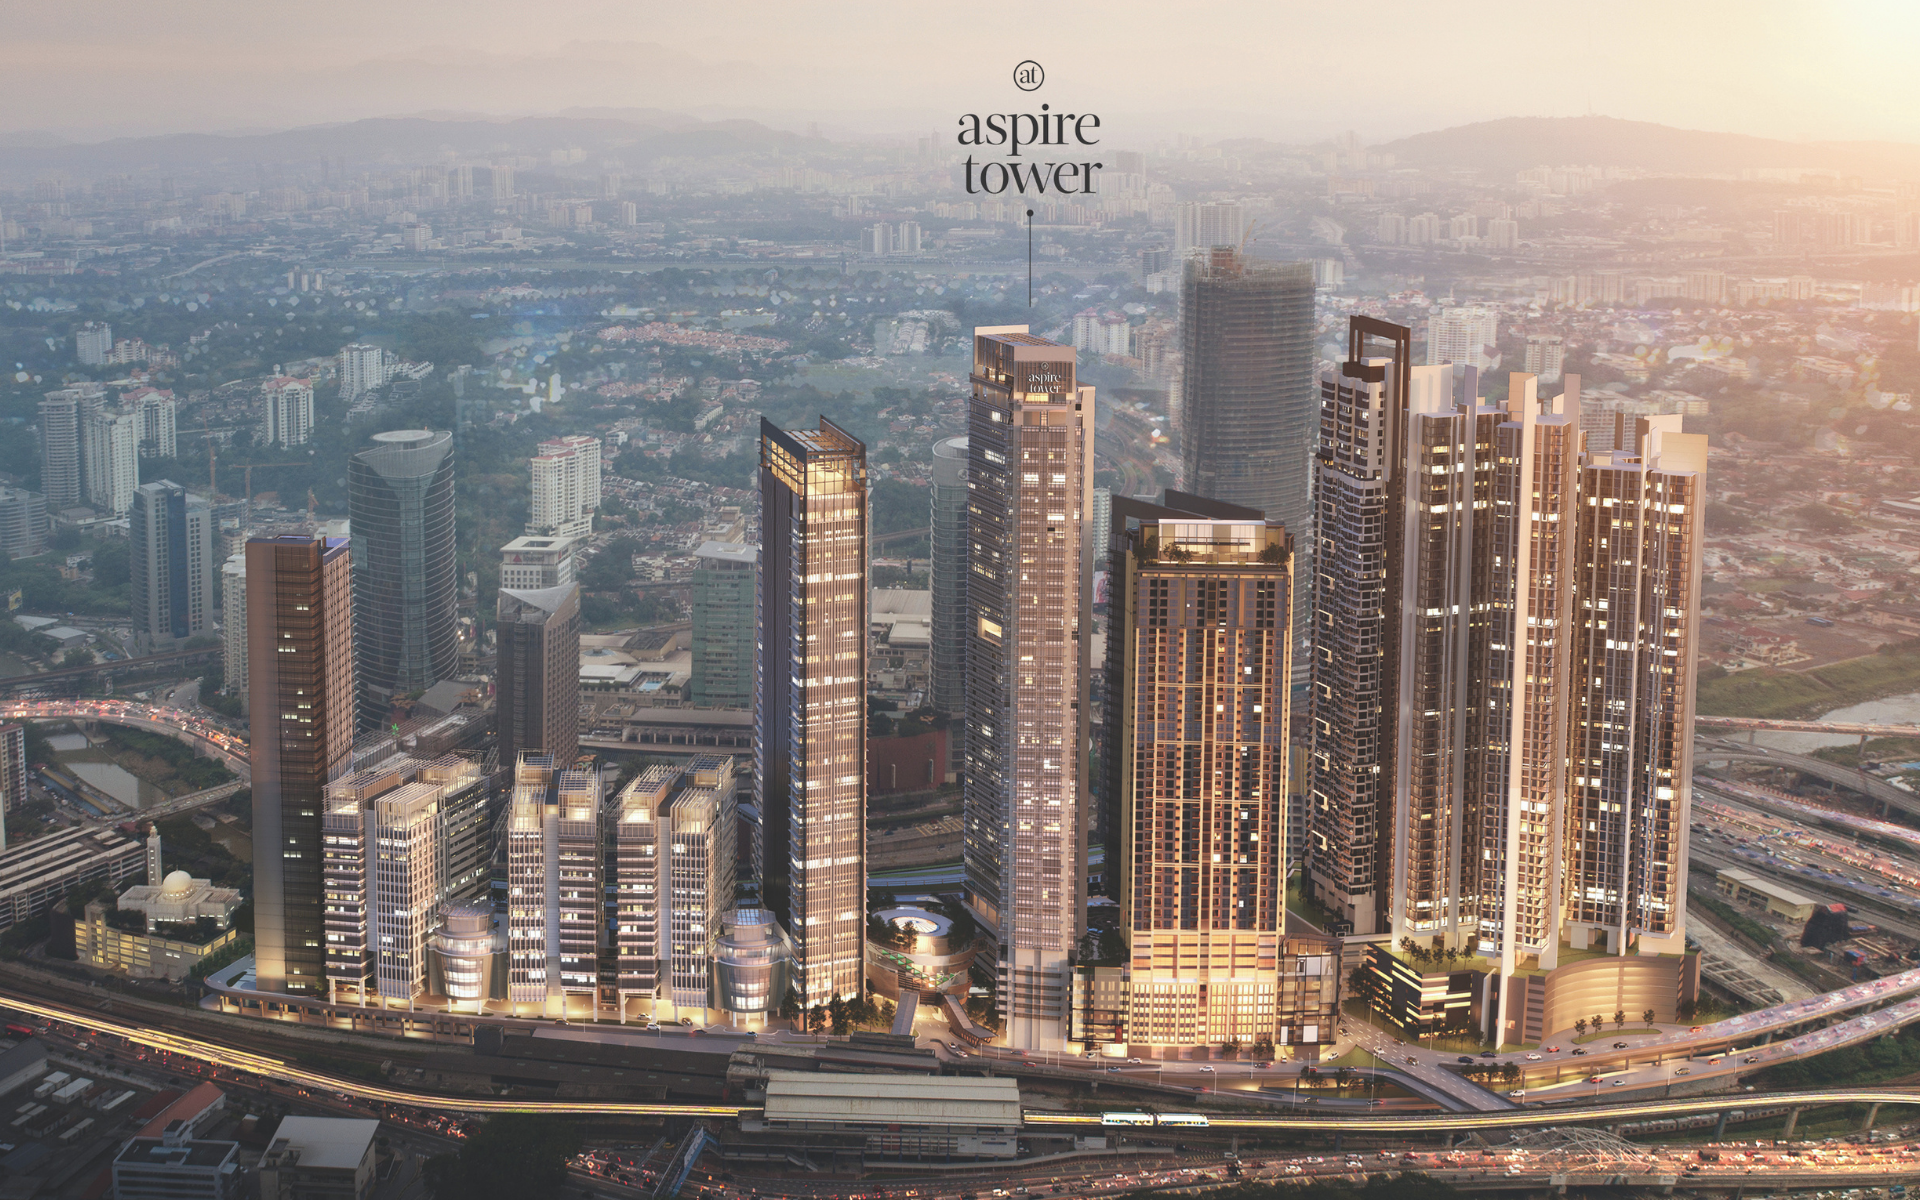 Aspire Tower is located at the heart of the 25-acre integrated mixed-use and transit-oriented development, KL Eco City